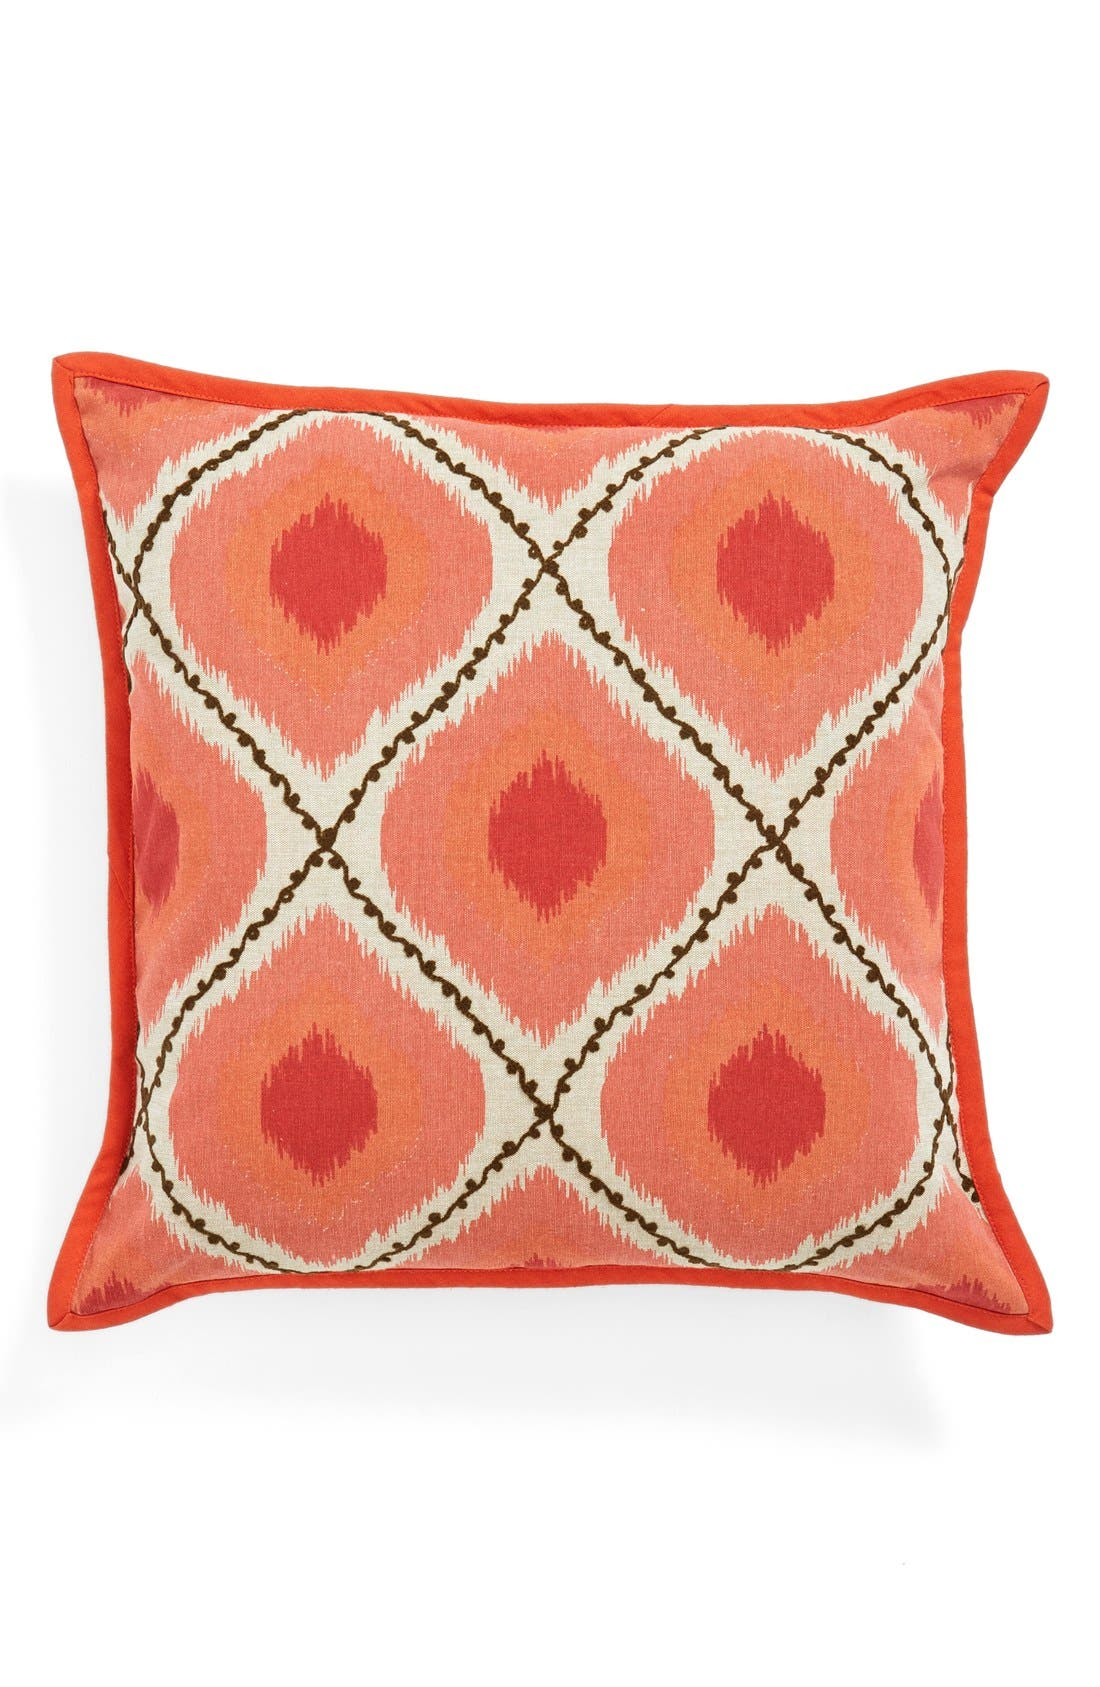 Alternate Image 1 Selected - Loloi Embroidered Ikat Pillow